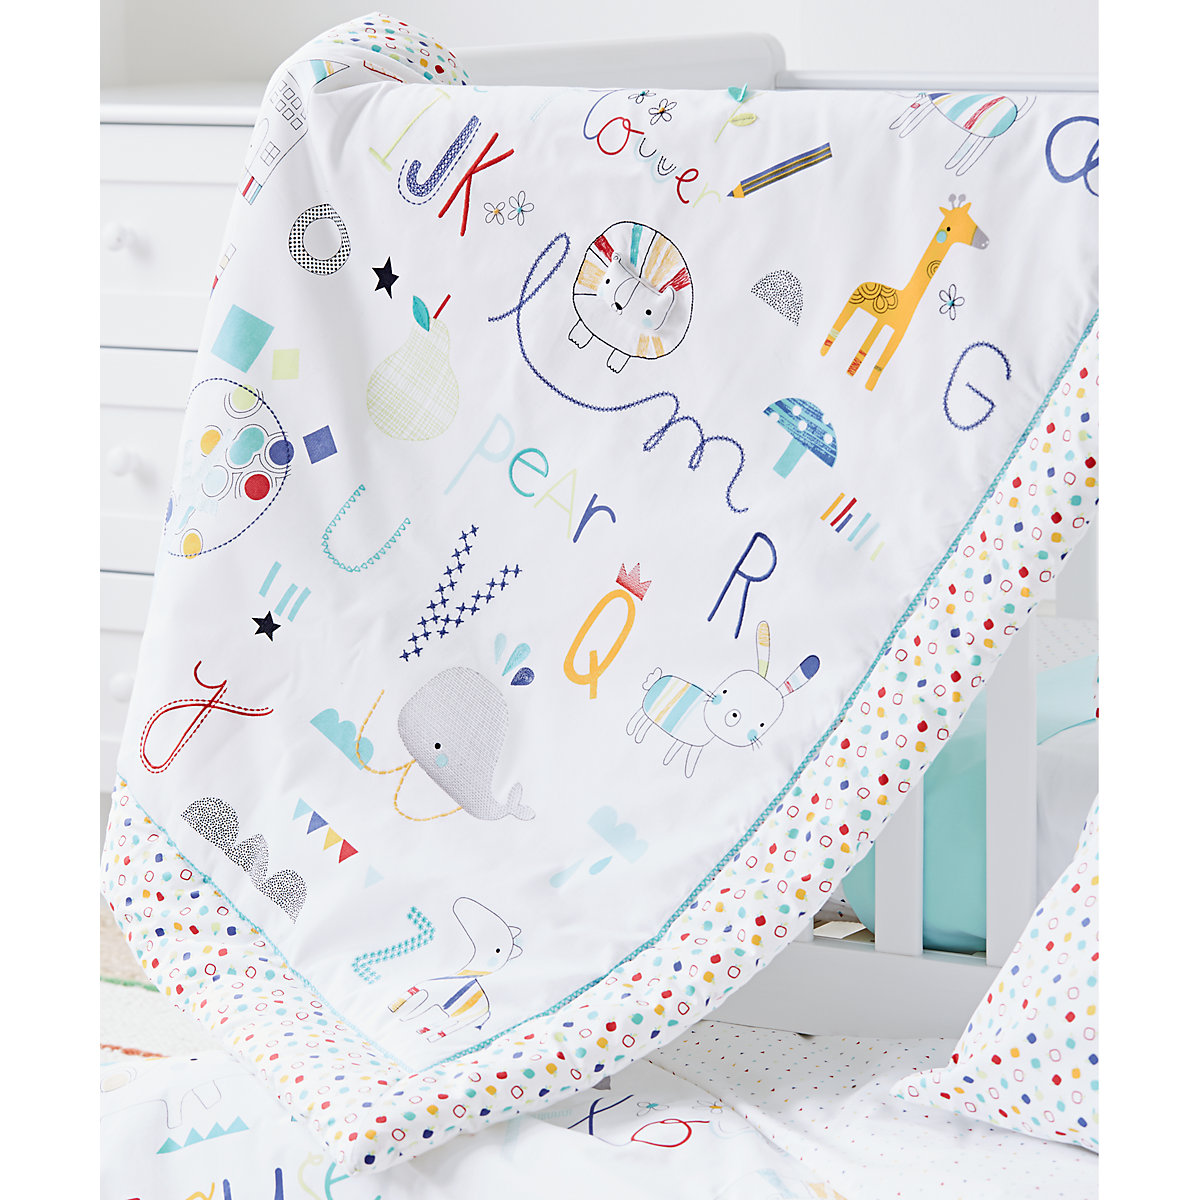 Baby bed quilt size - B Baby Bedding Alphabet Brights Cot Bed Quilt